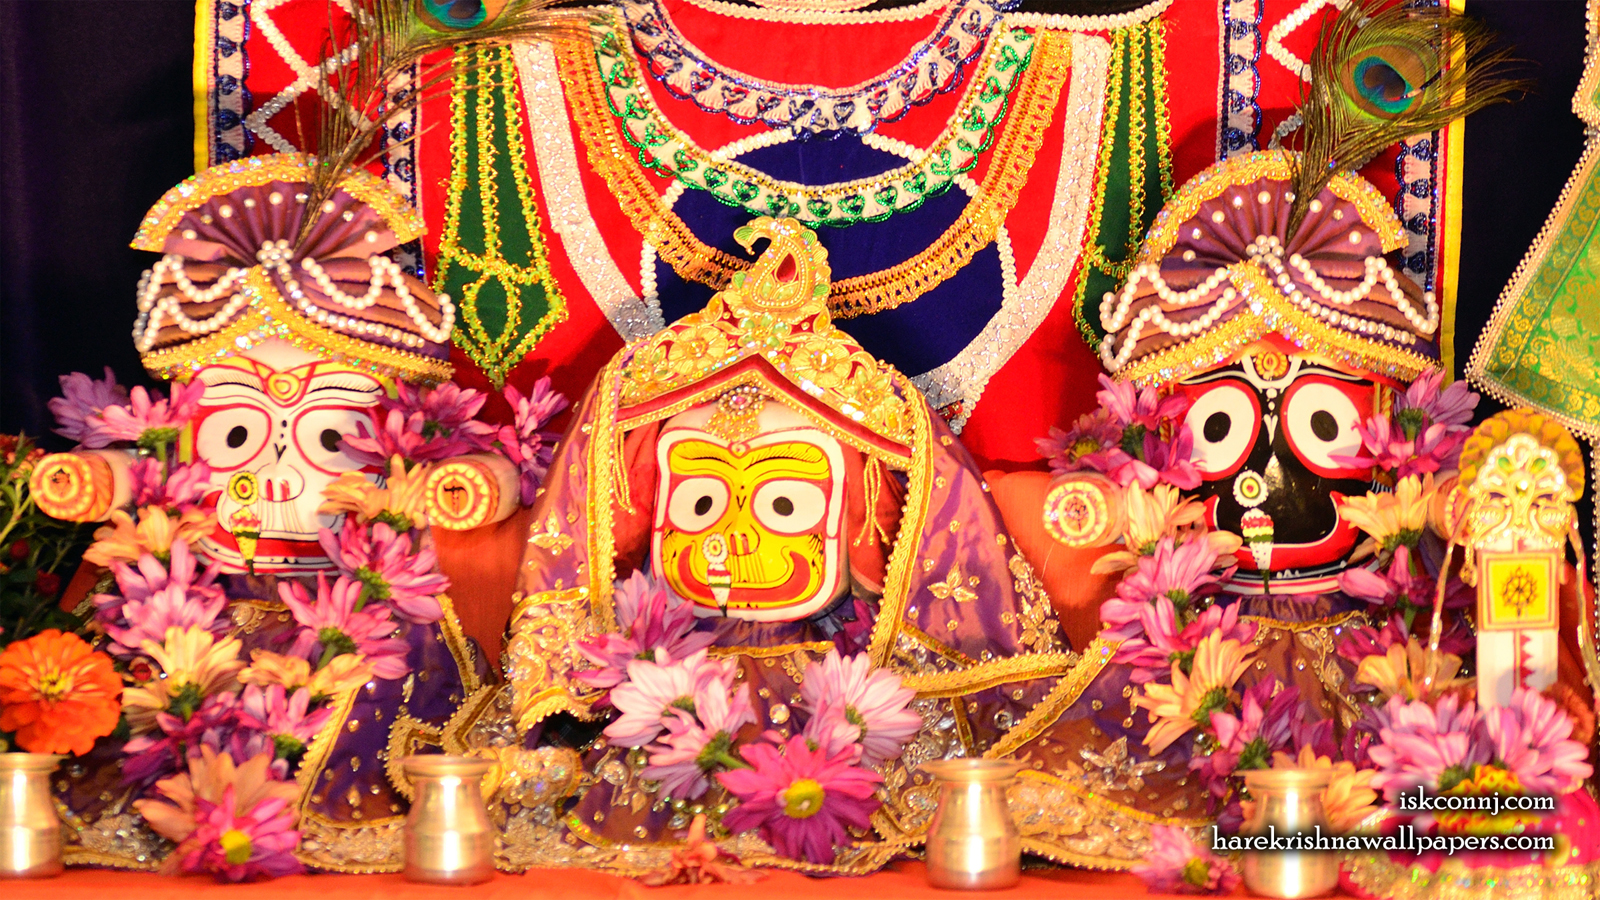 Jagannath Baladeva Subhadra Wallpaper (002) Size 1600x900 Download